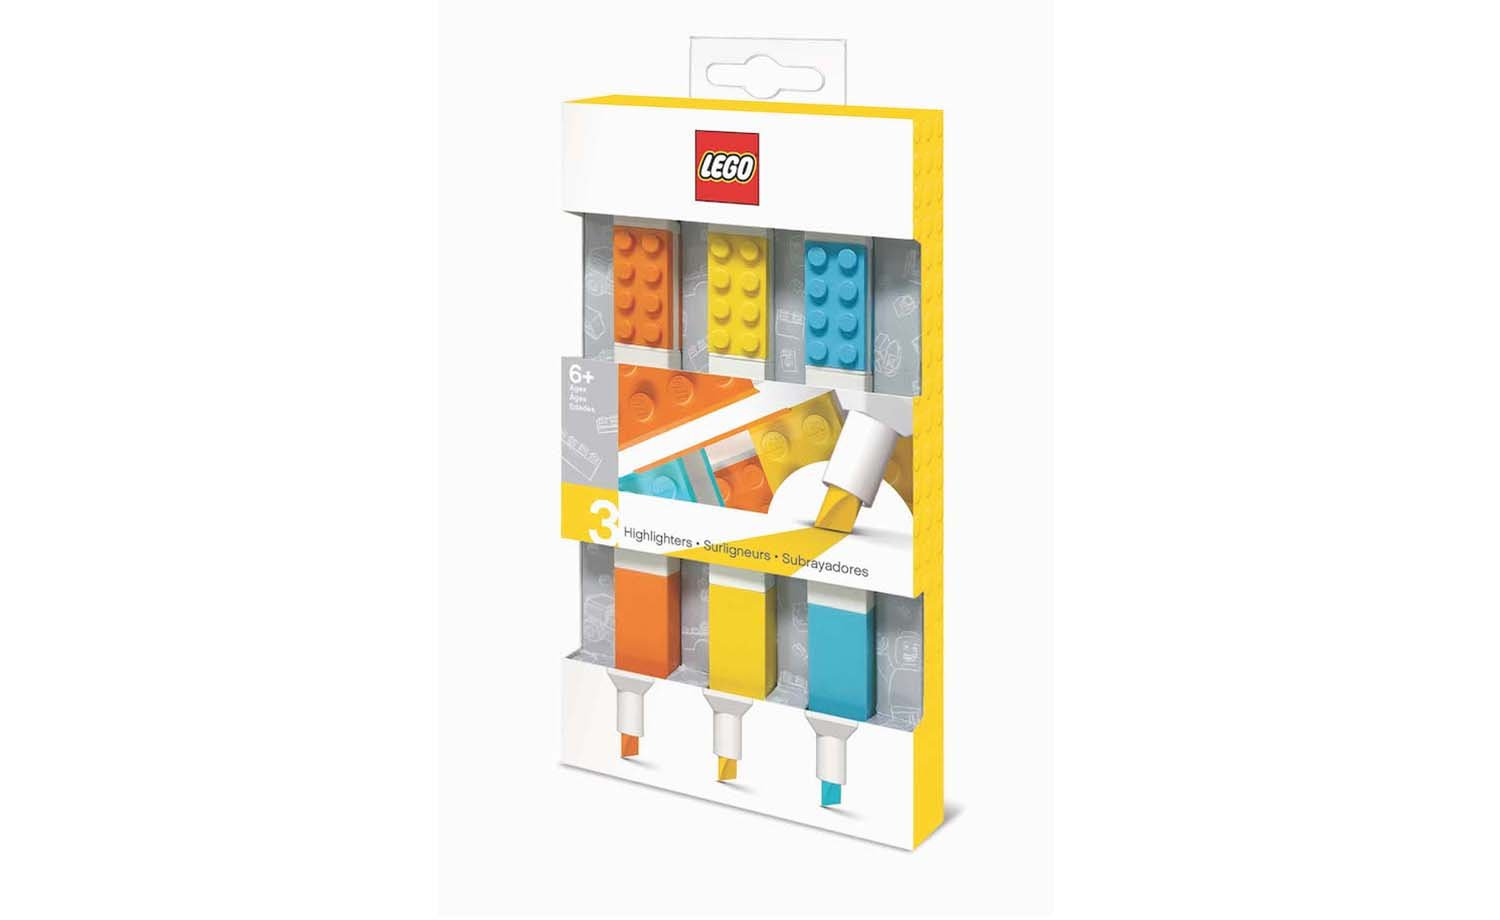 Lego Stationery - Highlighter (3 pack)